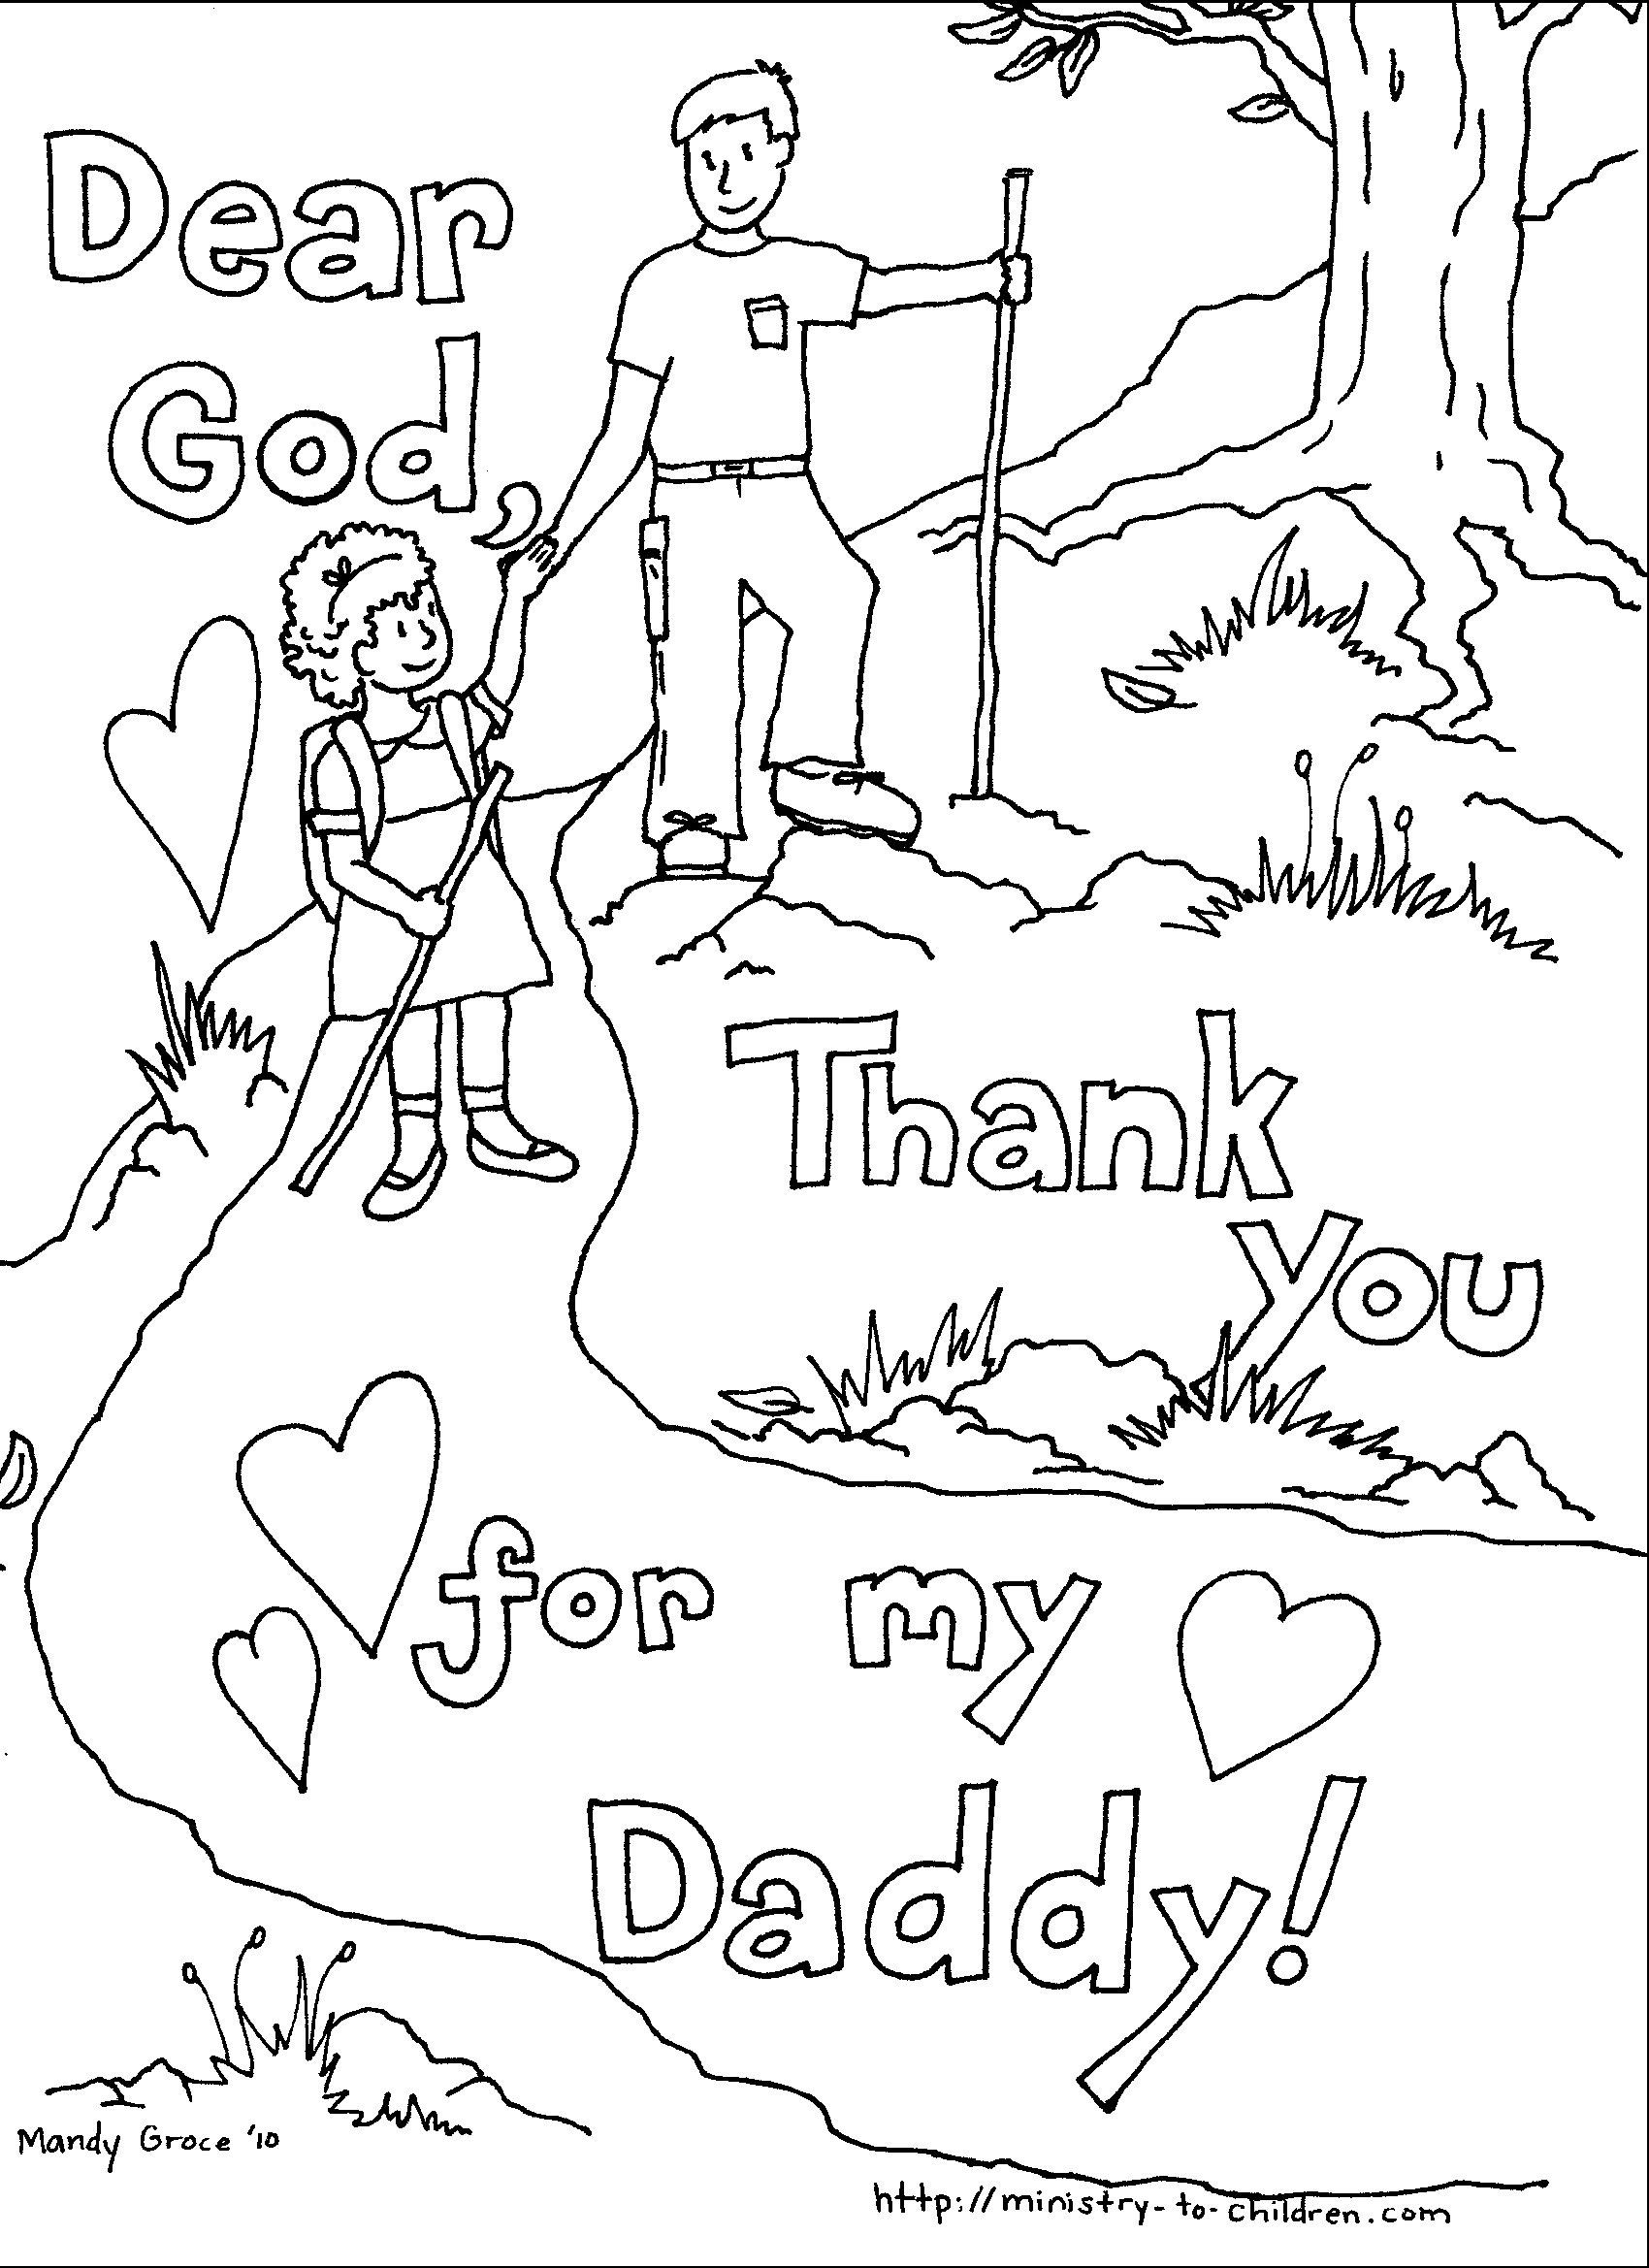 fathers day coloring pages to print - Free Large Images | dyi ...